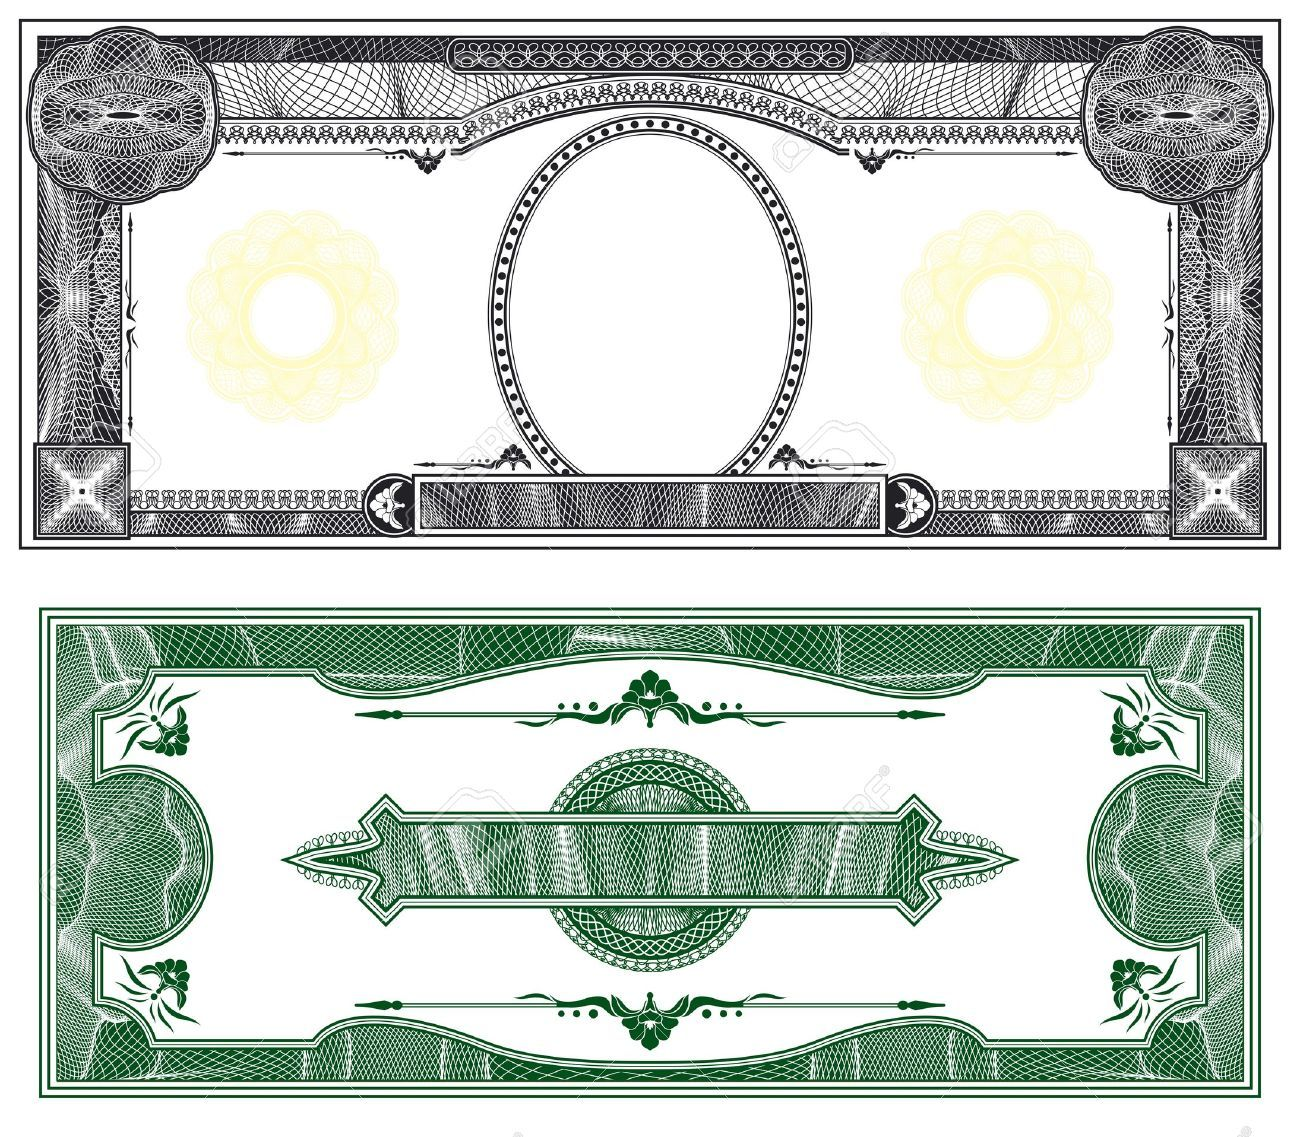 Blank Banknote Layout With Obverse And Reverse Based On Dollar Bill Stock Photo 8109064 In 2021 Money Template Bank Notes Dollar Bill Design your own money template